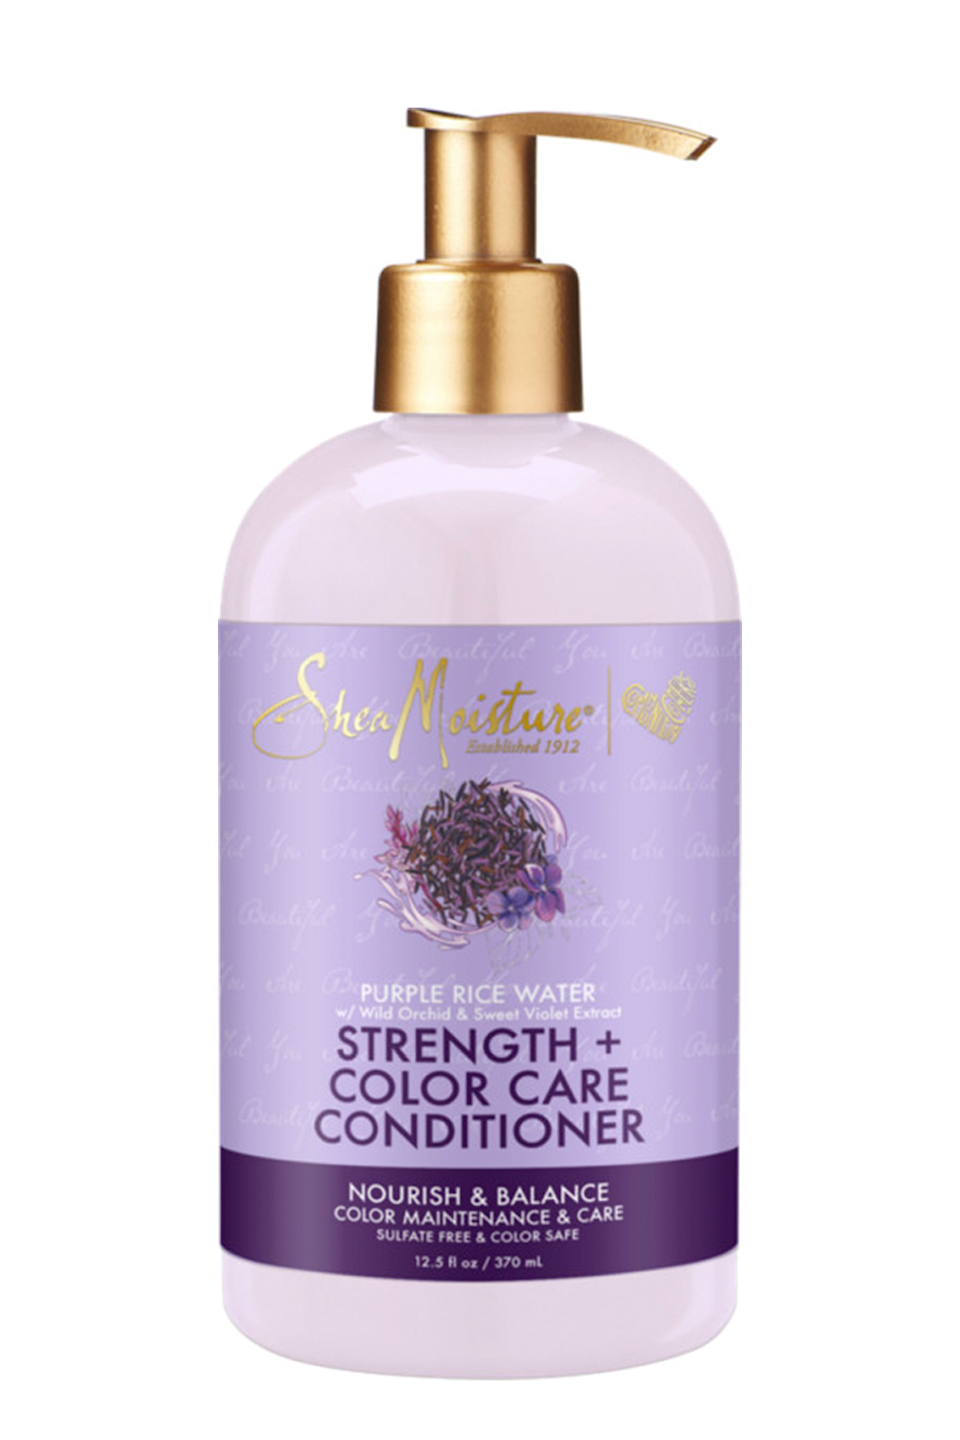 """<p><strong>SheaMoisture</strong></p><p>amazon.com</p><p><strong>$11.64</strong></p><p><a href=""""https://www.amazon.com/SheaMoisture-Strength-Color-Conditioner-Purple/dp/B082KYX7GL?tag=syn-yahoo-20&ascsubtag=%5Bartid%7C10049.g.33576495%5Bsrc%7Cyahoo-us"""" rel=""""nofollow noopener"""" target=""""_blank"""" data-ylk=""""slk:Shop Now"""" class=""""link rapid-noclick-resp"""">Shop Now</a></p><p>I get it: Color-treated and <a href=""""https://www.cosmopolitan.com/style-beauty/beauty/a32070575/how-to-highlight-hair-at-home/"""" rel=""""nofollow noopener"""" target=""""_blank"""" data-ylk=""""slk:highlighted hair"""" class=""""link rapid-noclick-resp"""">highlighted hair</a> is super prone to damage (my brittle-AF ends are proof), which is why it's so important to use a strengthening conditioner. This one from SheaMoisture combines antioxidant-rich rice water with orchid and violet extracts to <strong>hydrate, detangle, <em>and</em> neutralize brass</strong>. That's what I call a win-win.<br></p>"""